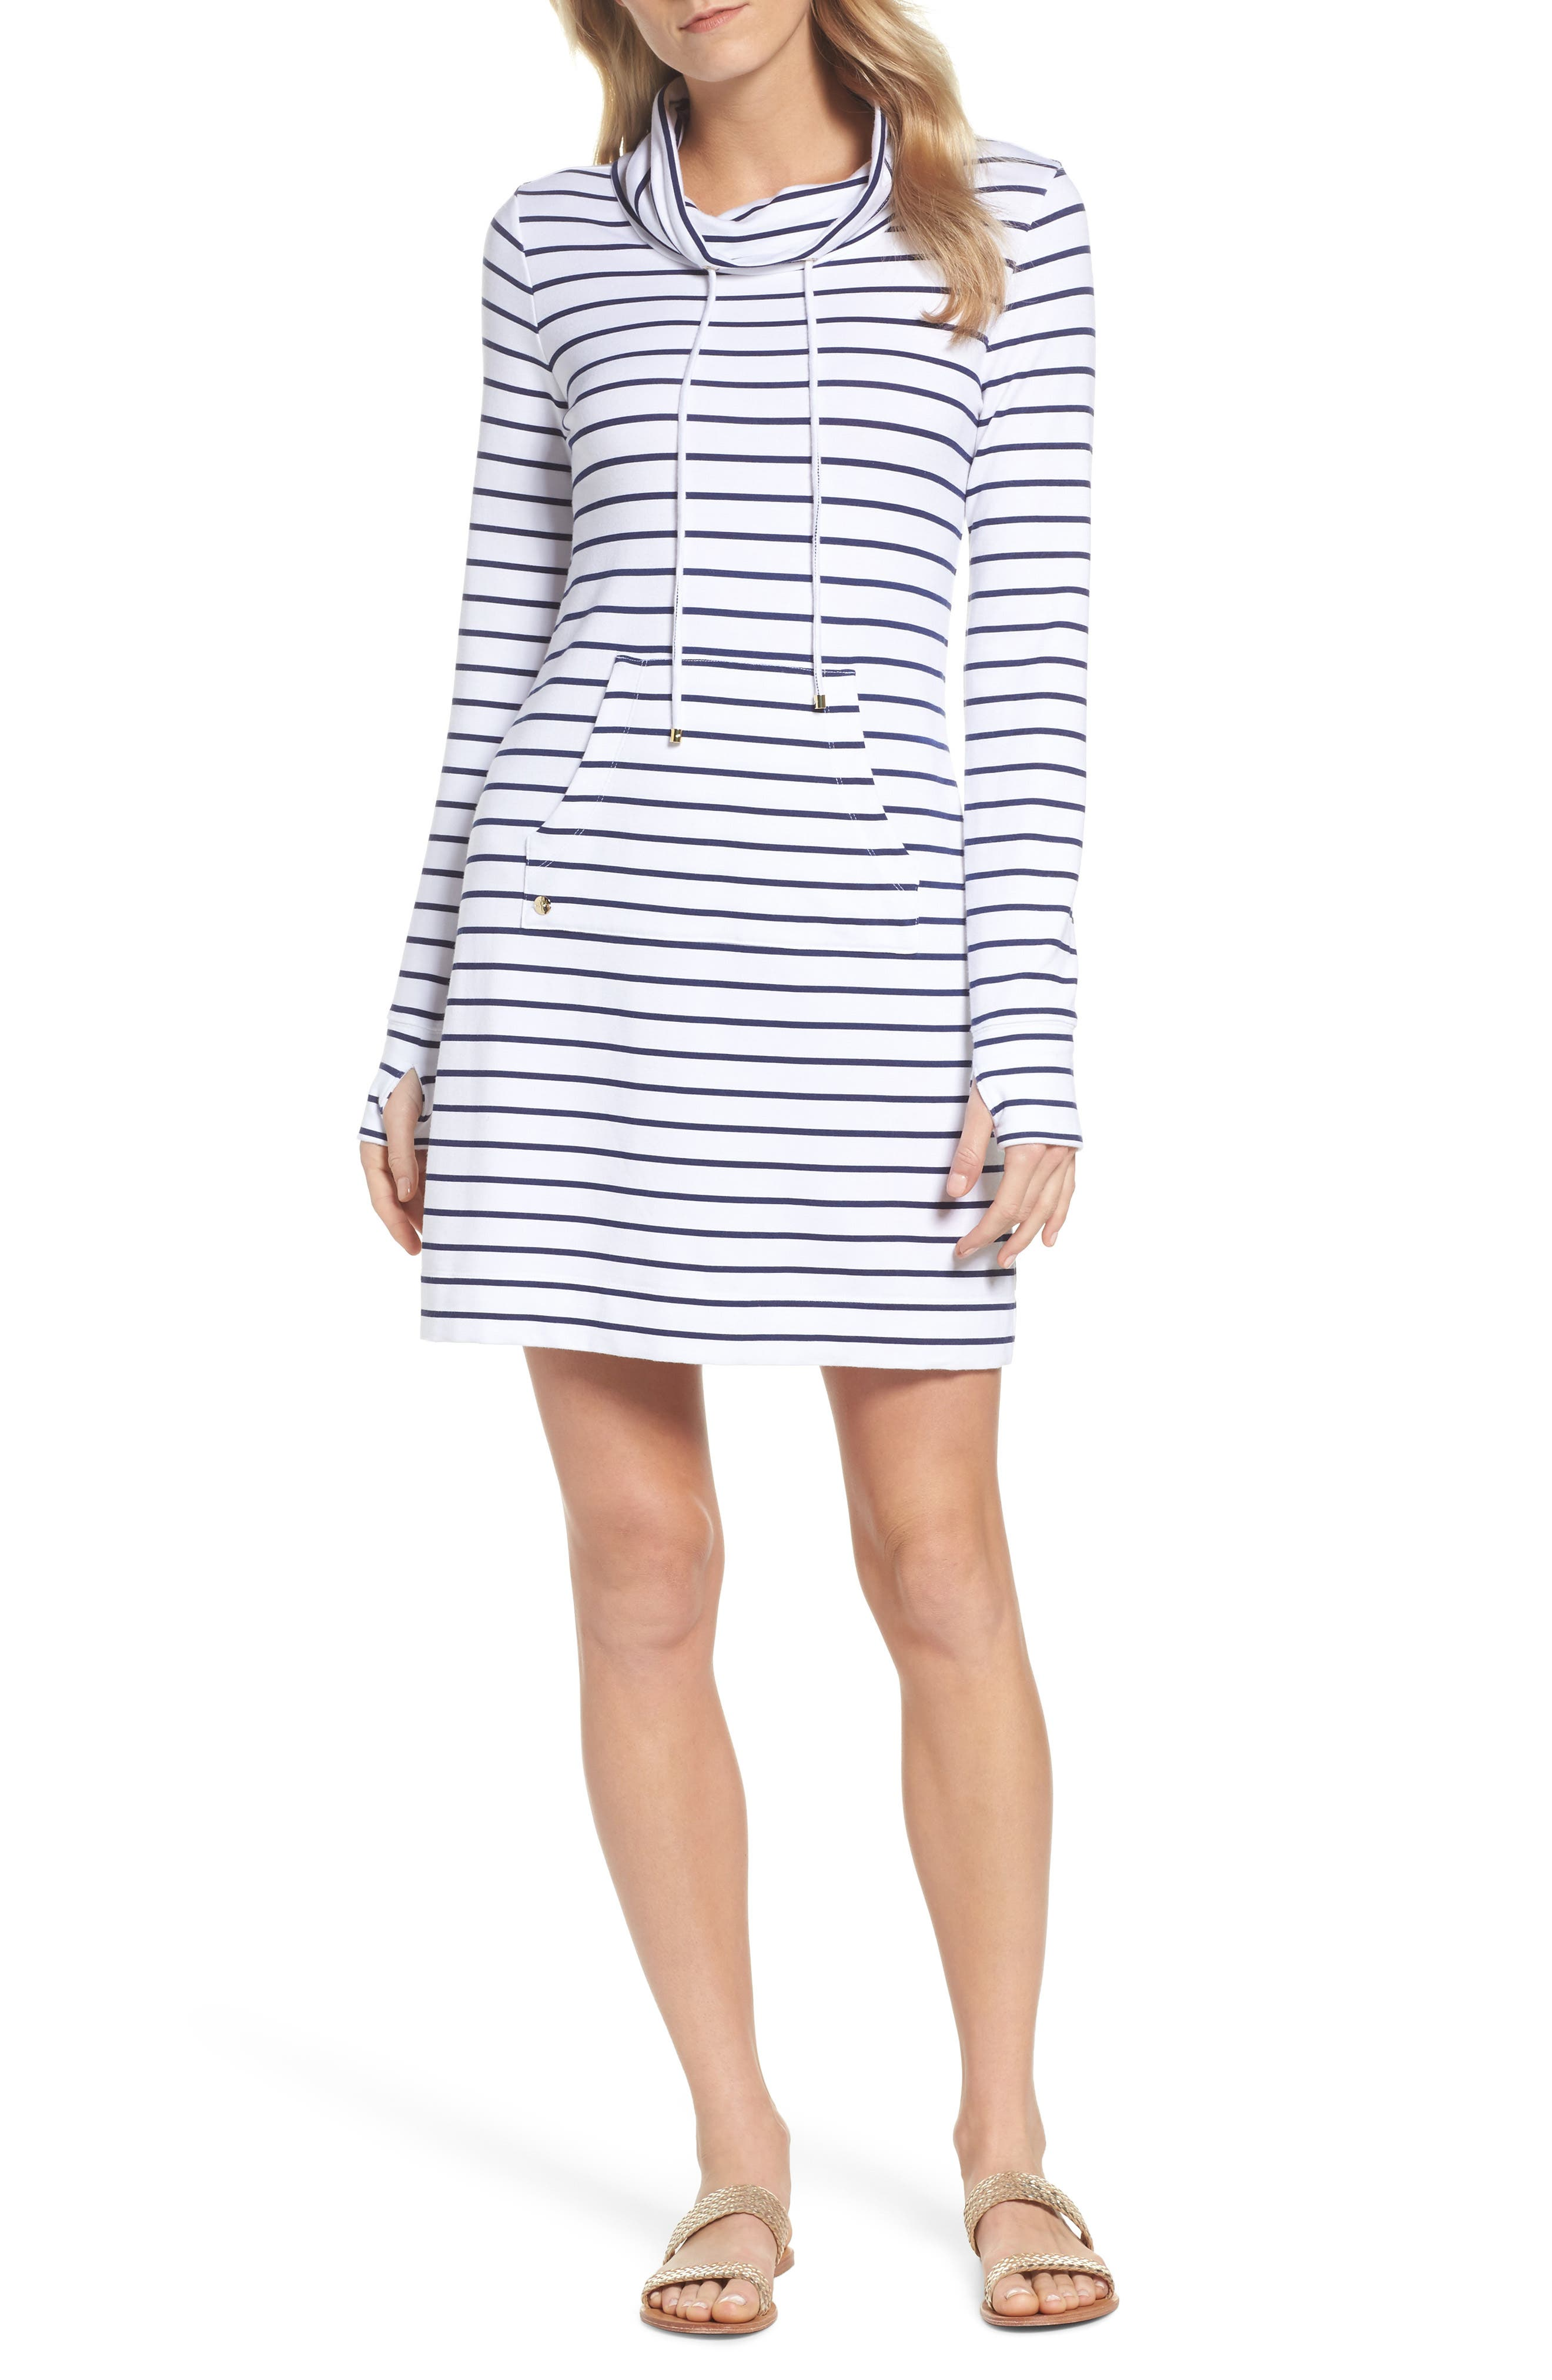 Hilary UPF 50+ Dress,                             Main thumbnail 1, color,                             Bright Navy Mystic Stripe